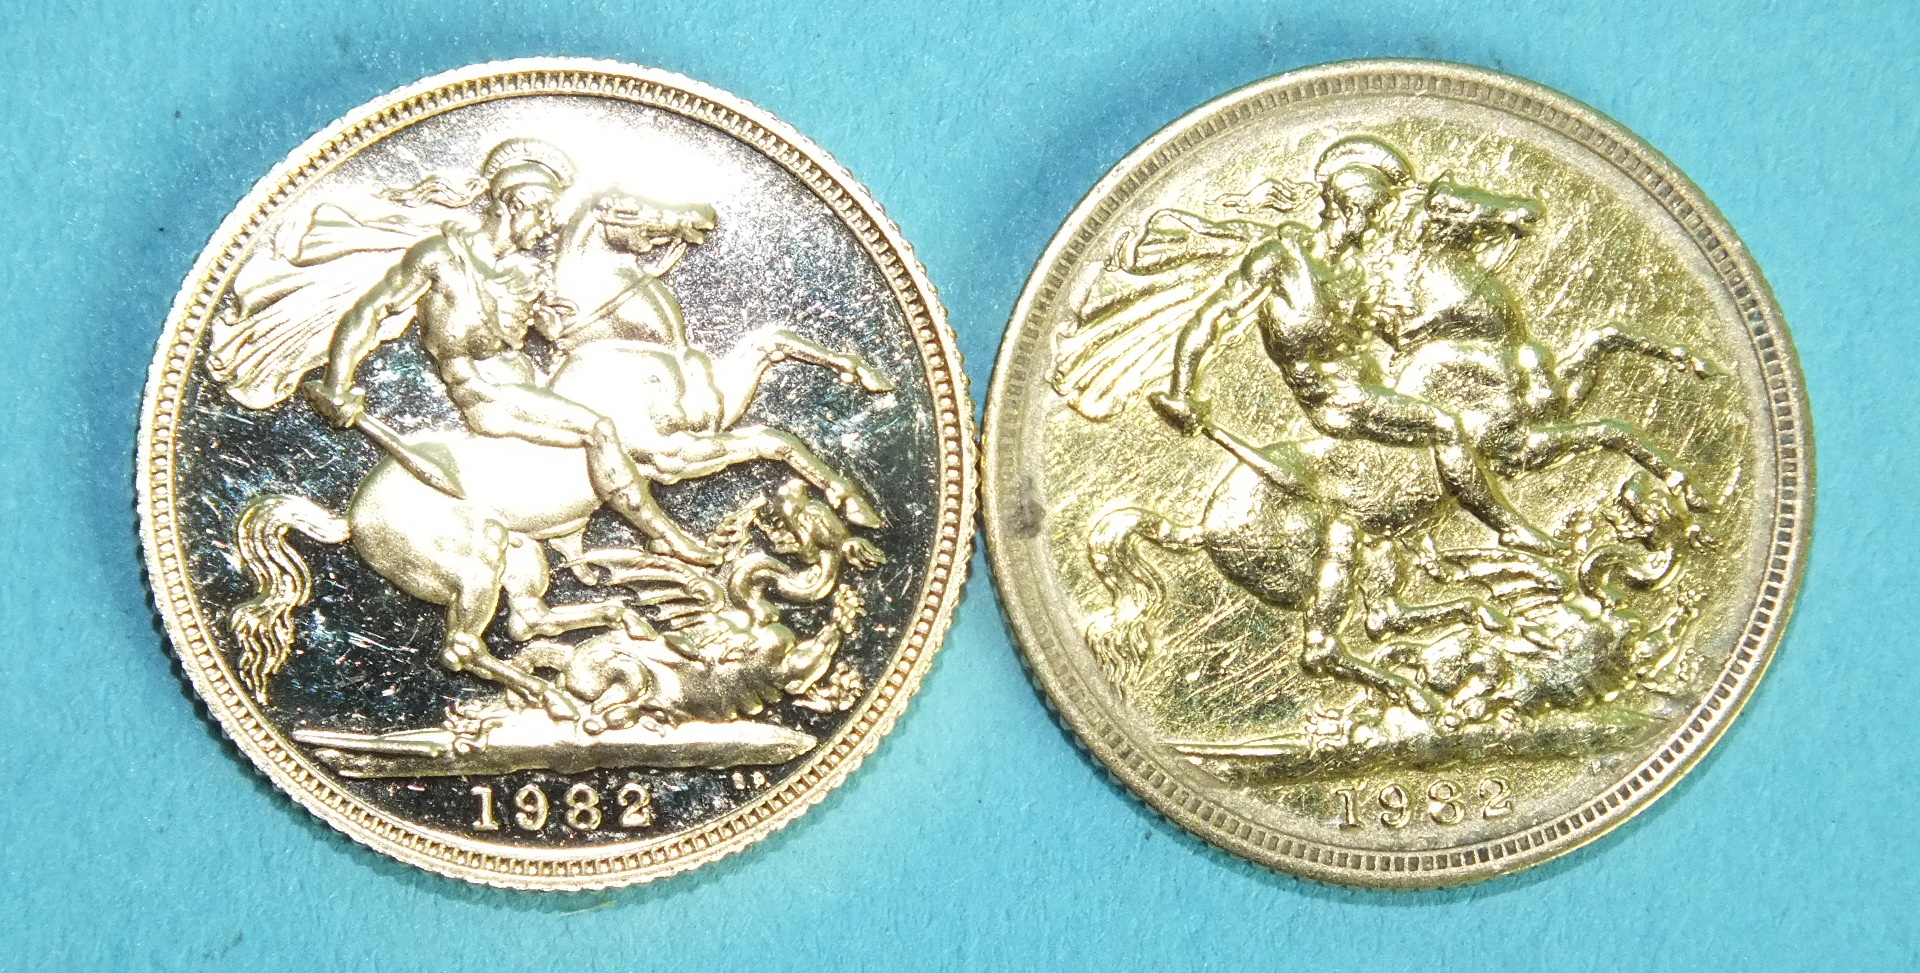 Lot 383 - Two Elizabeth II 1982 sovereigns, (one with scratches), (2).